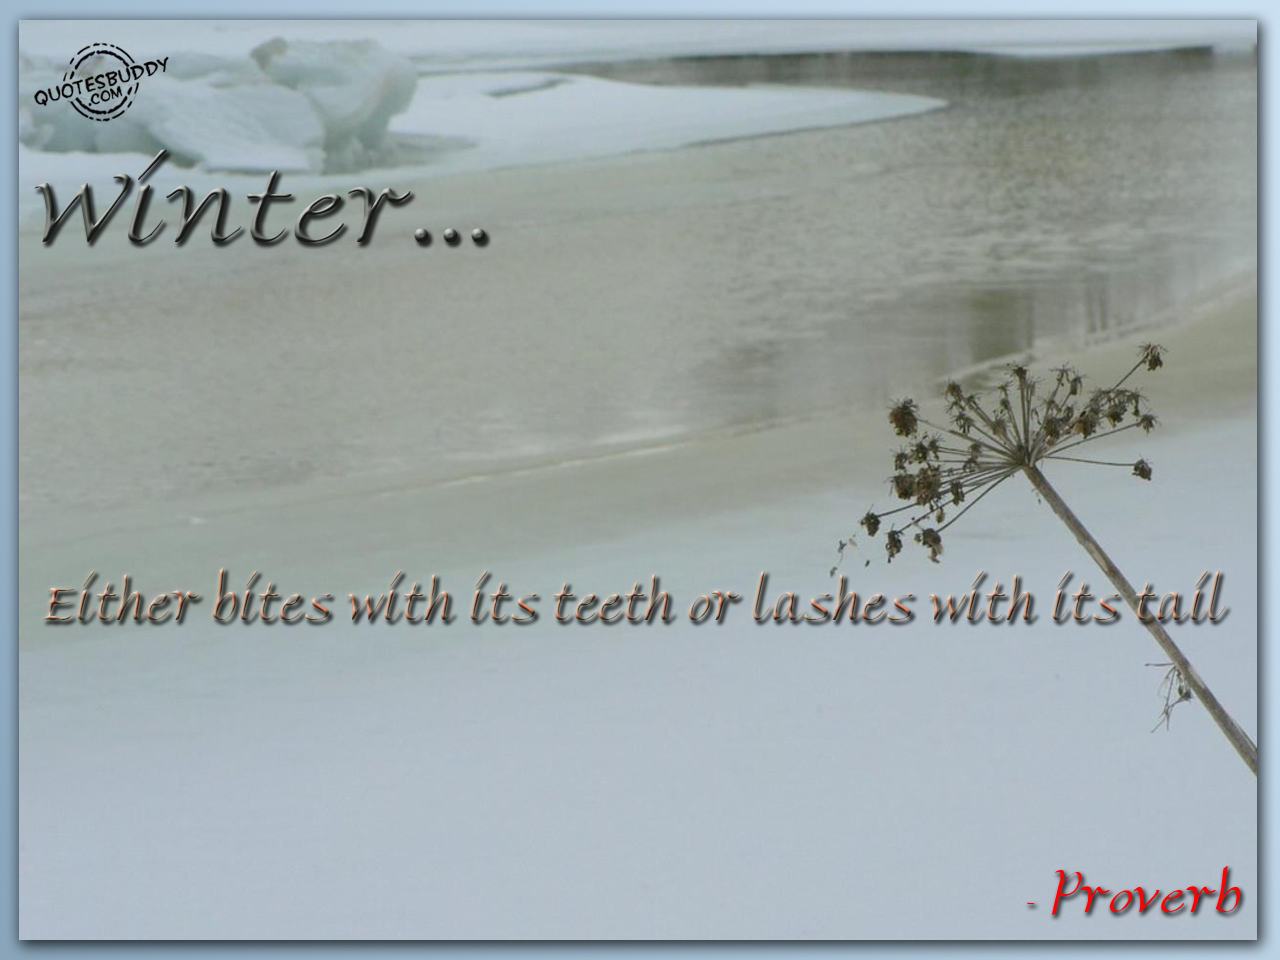 Bad Weather Quotes Funny: Winter Weather Funny Quotes. QuotesGram